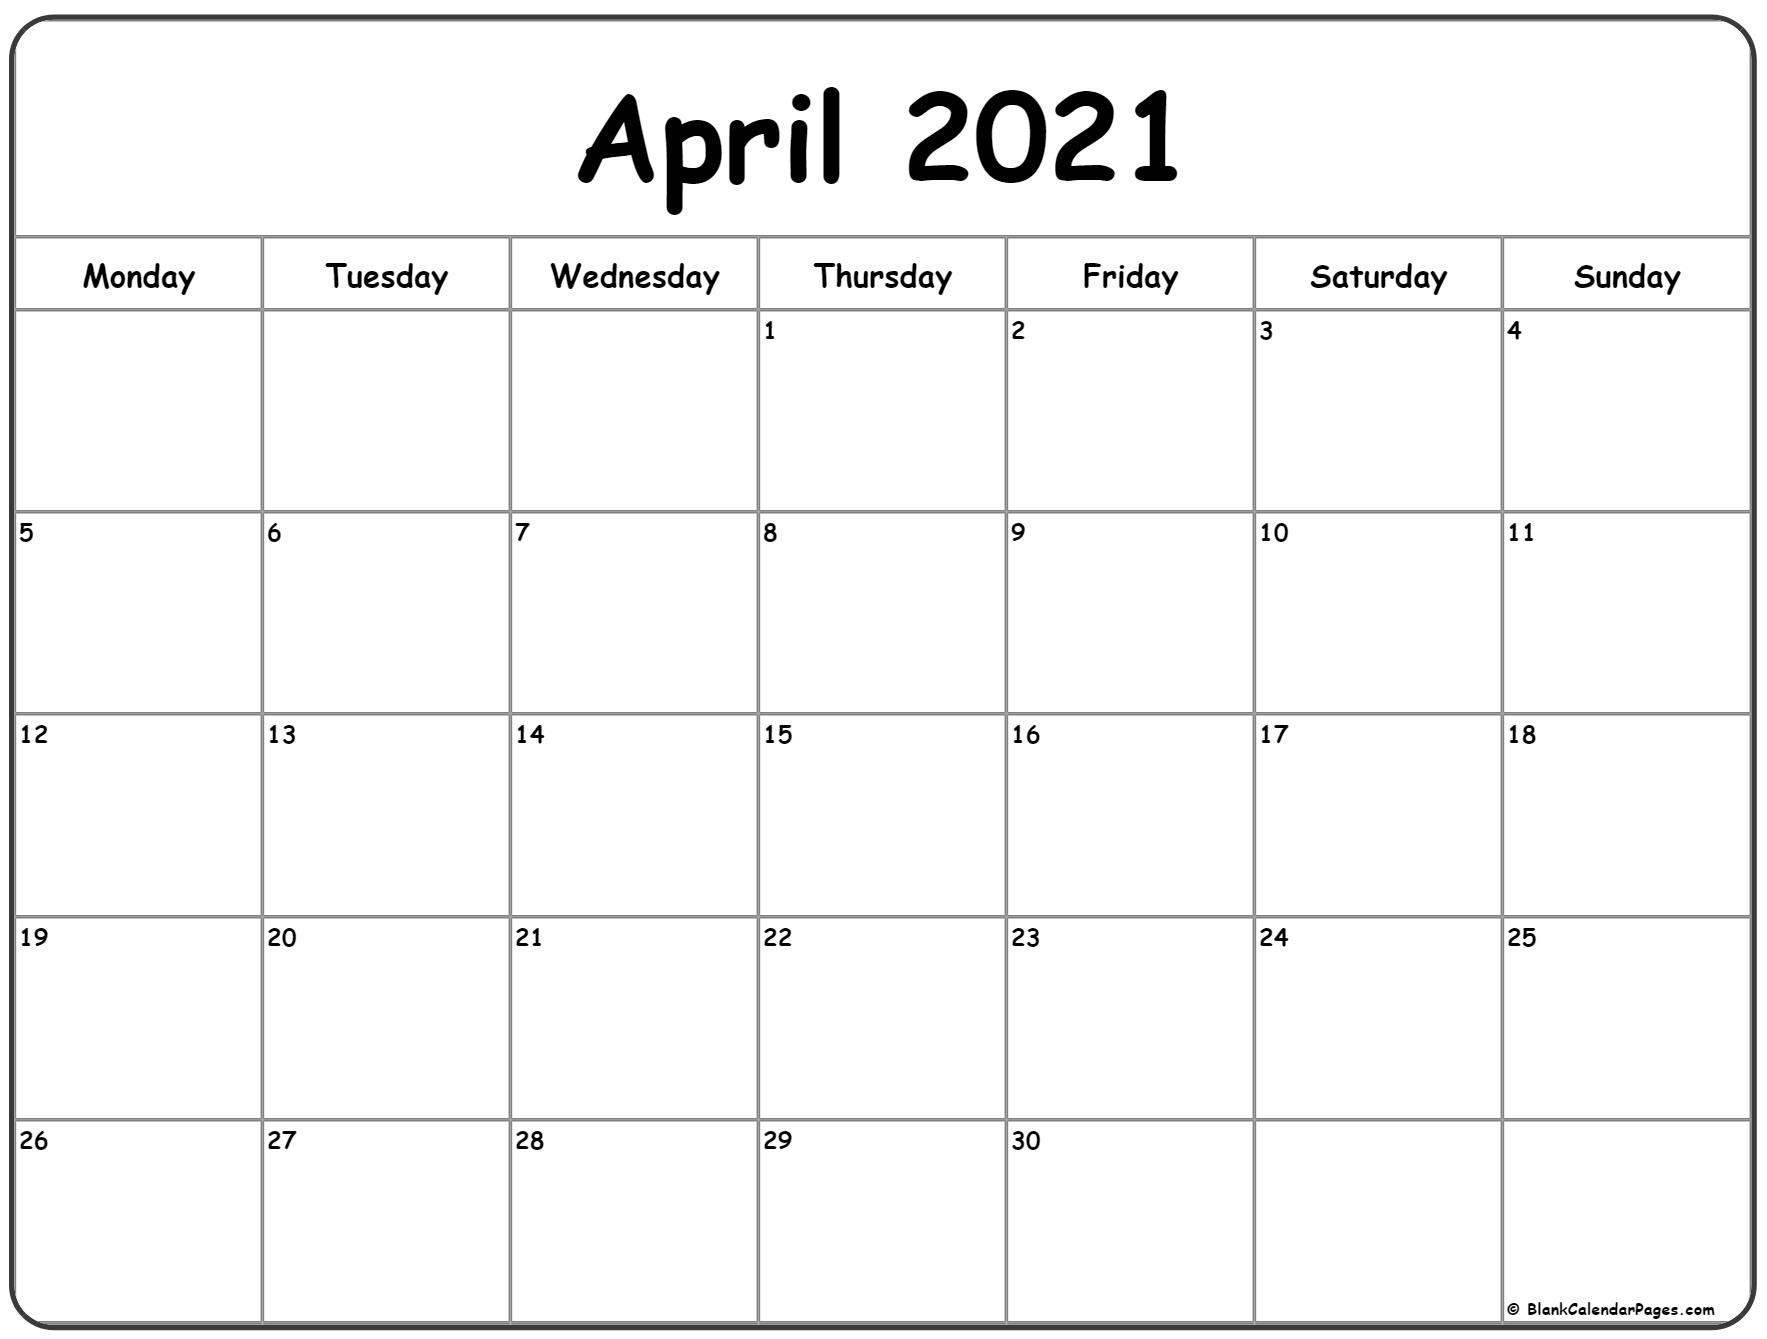 April 2021 Monday Calendar | Monday To Sunday